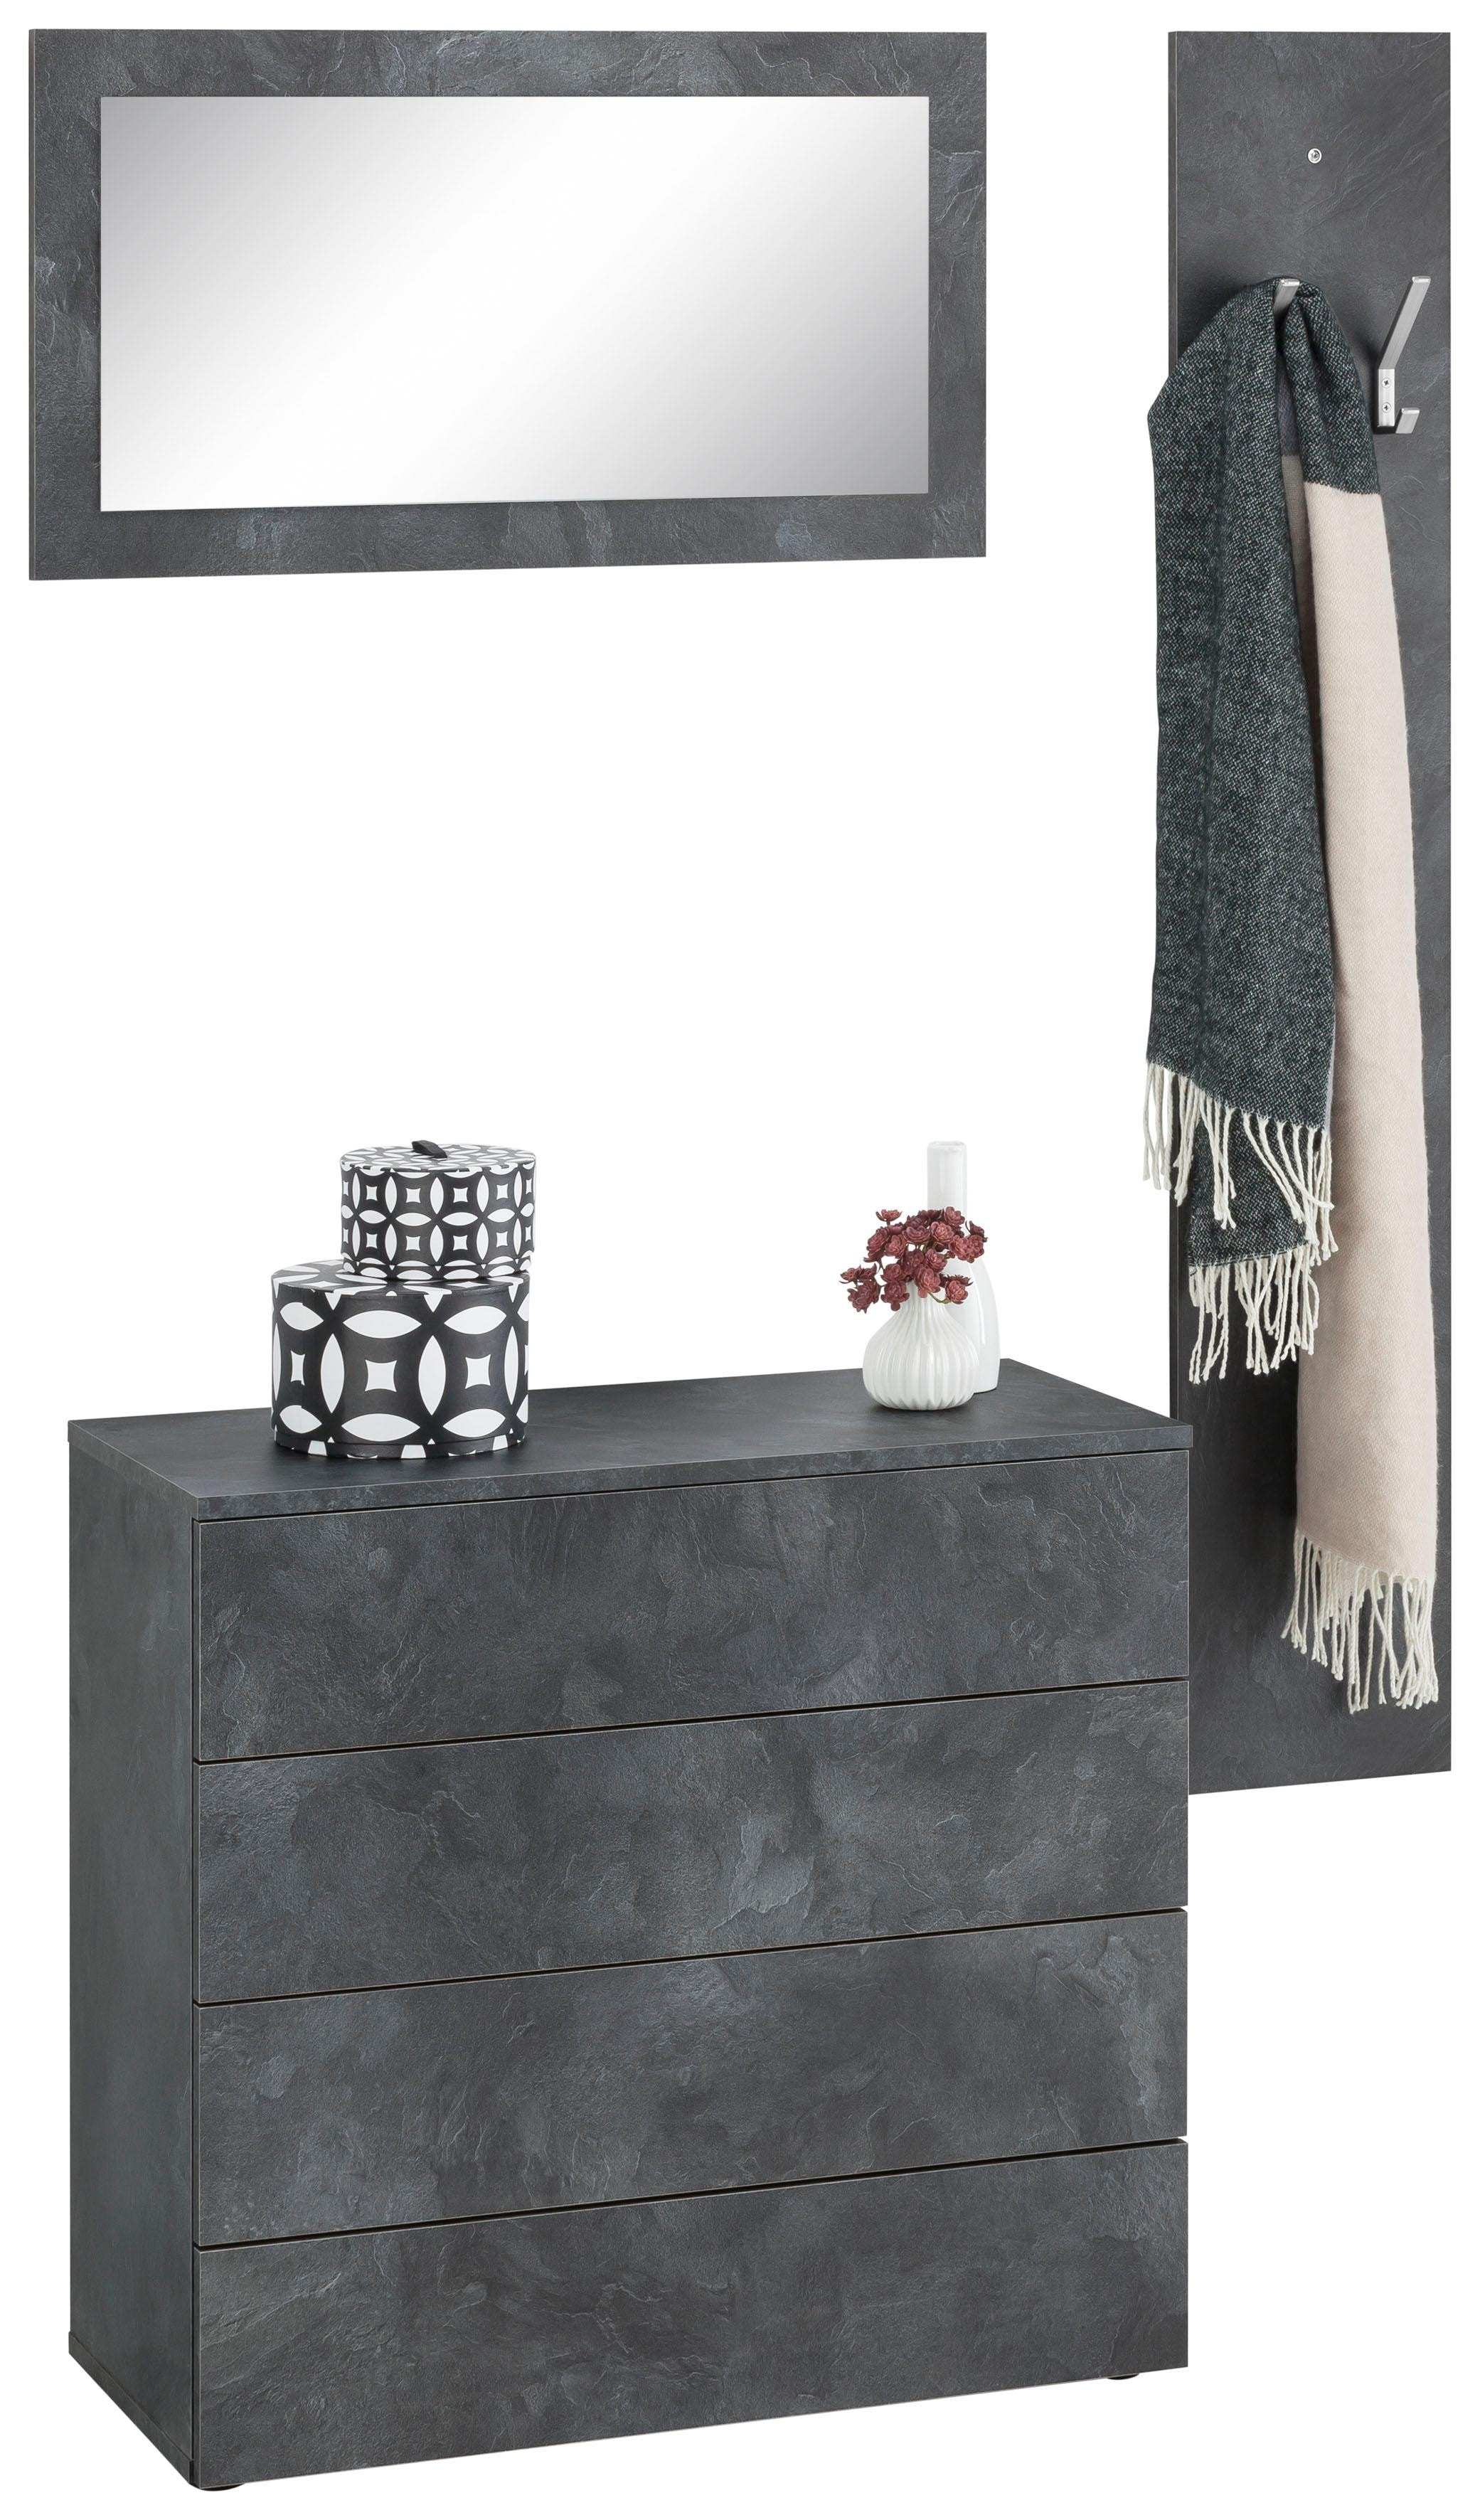 grau beton garderoben sets online kaufen m bel suchmaschine. Black Bedroom Furniture Sets. Home Design Ideas